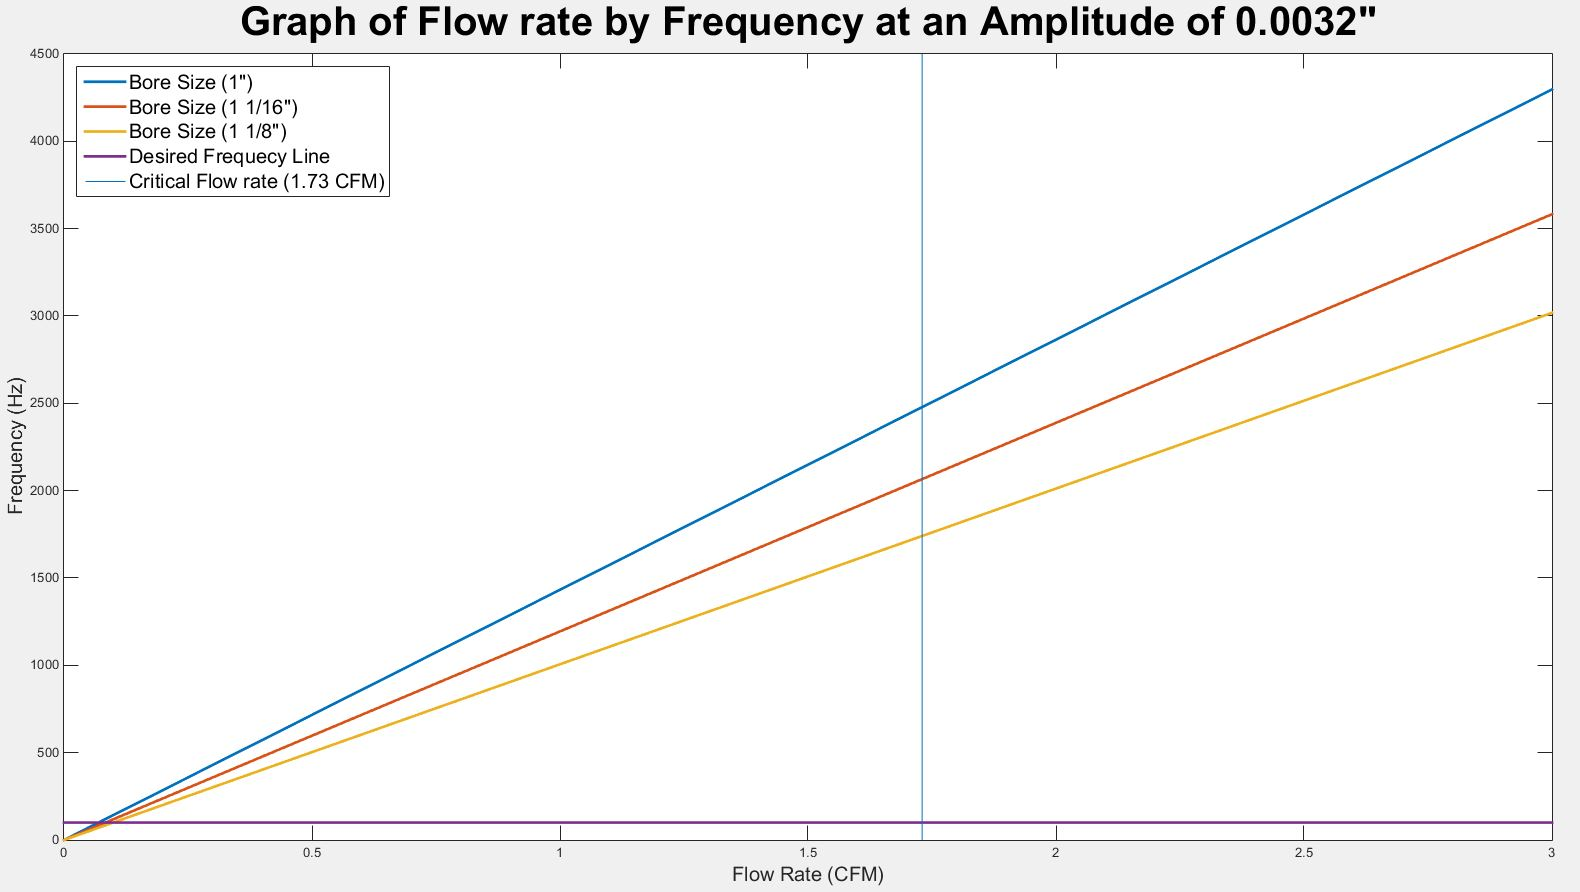 public/Preliminary Detailed Design Documents/P16103_flow rate graph_Amplitude_0.0032.JPG